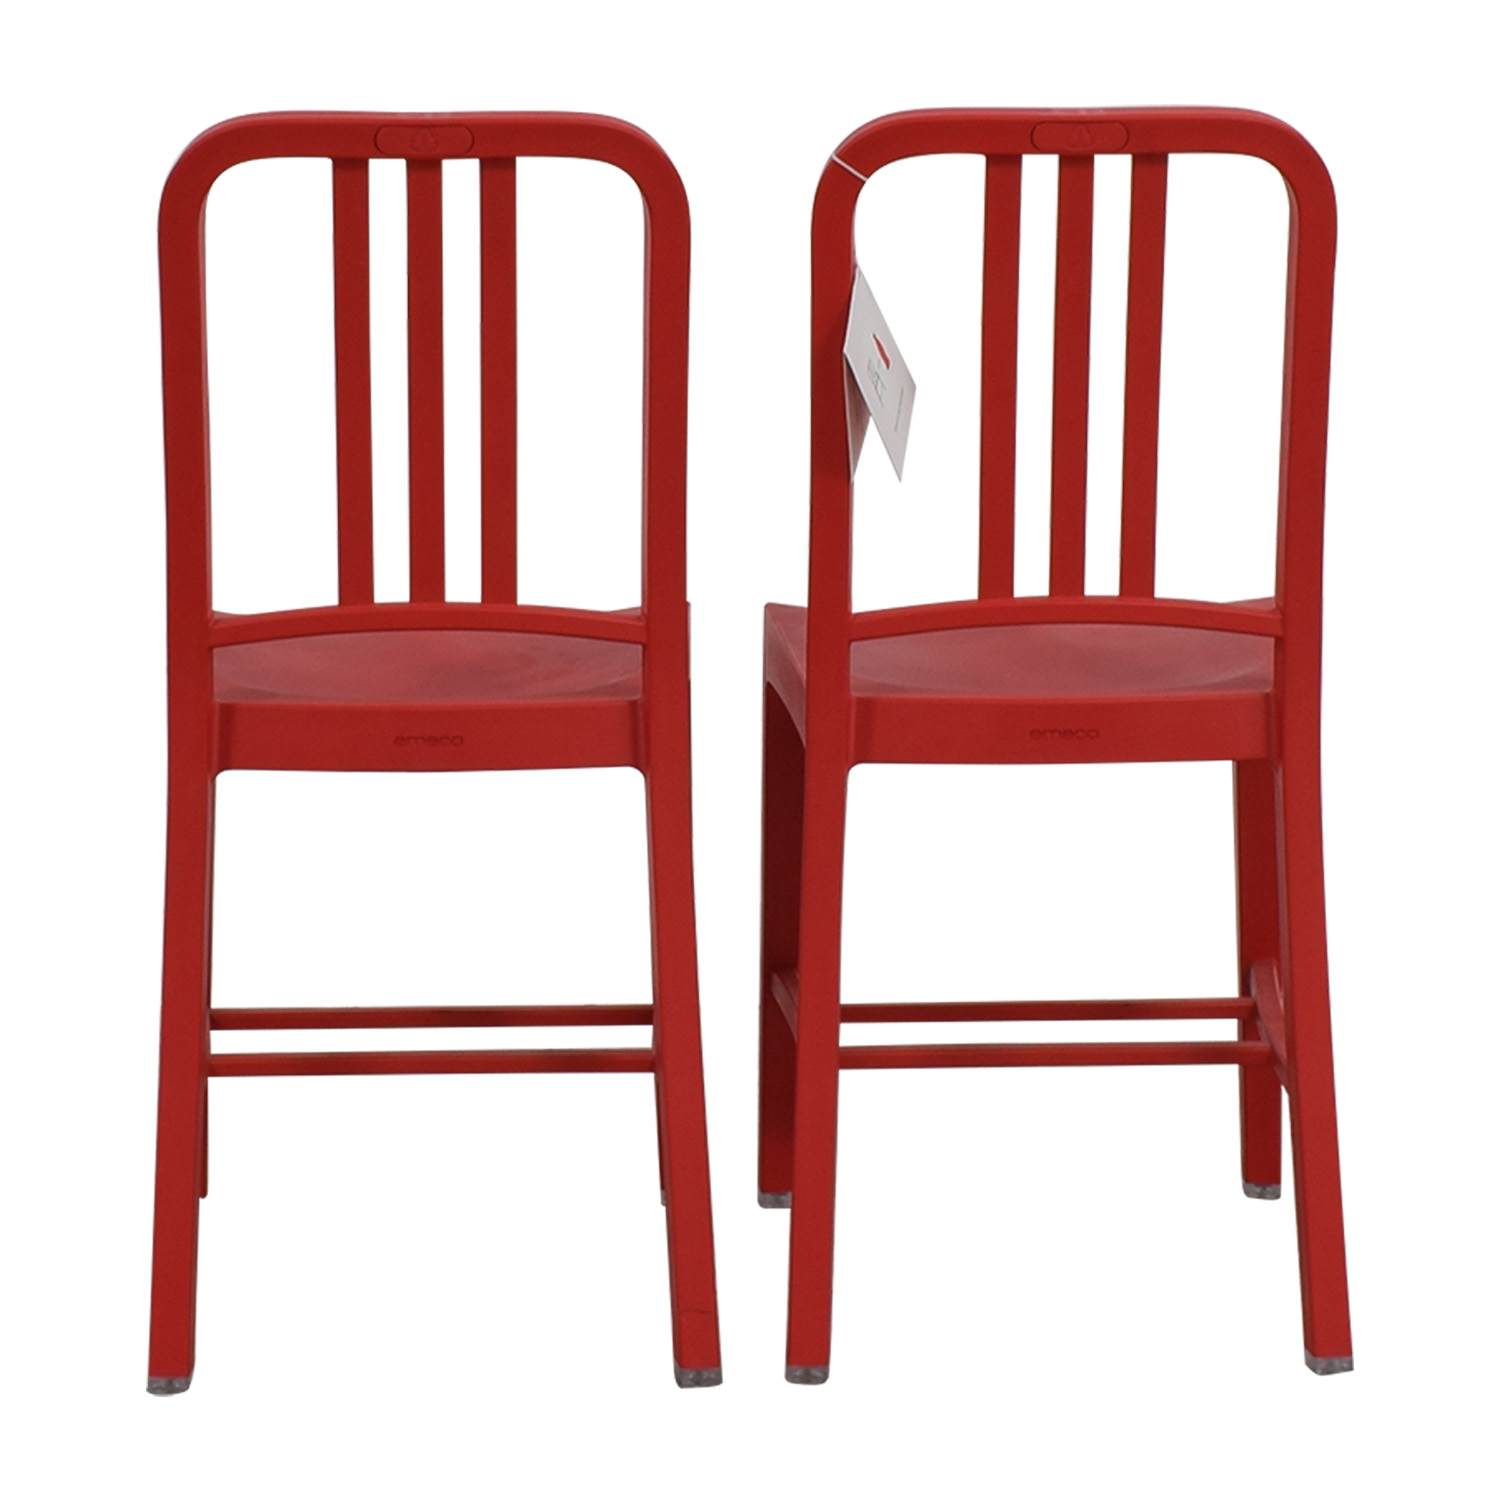 Emeco Emeco 111 Navy Recycled Red Chairs Red